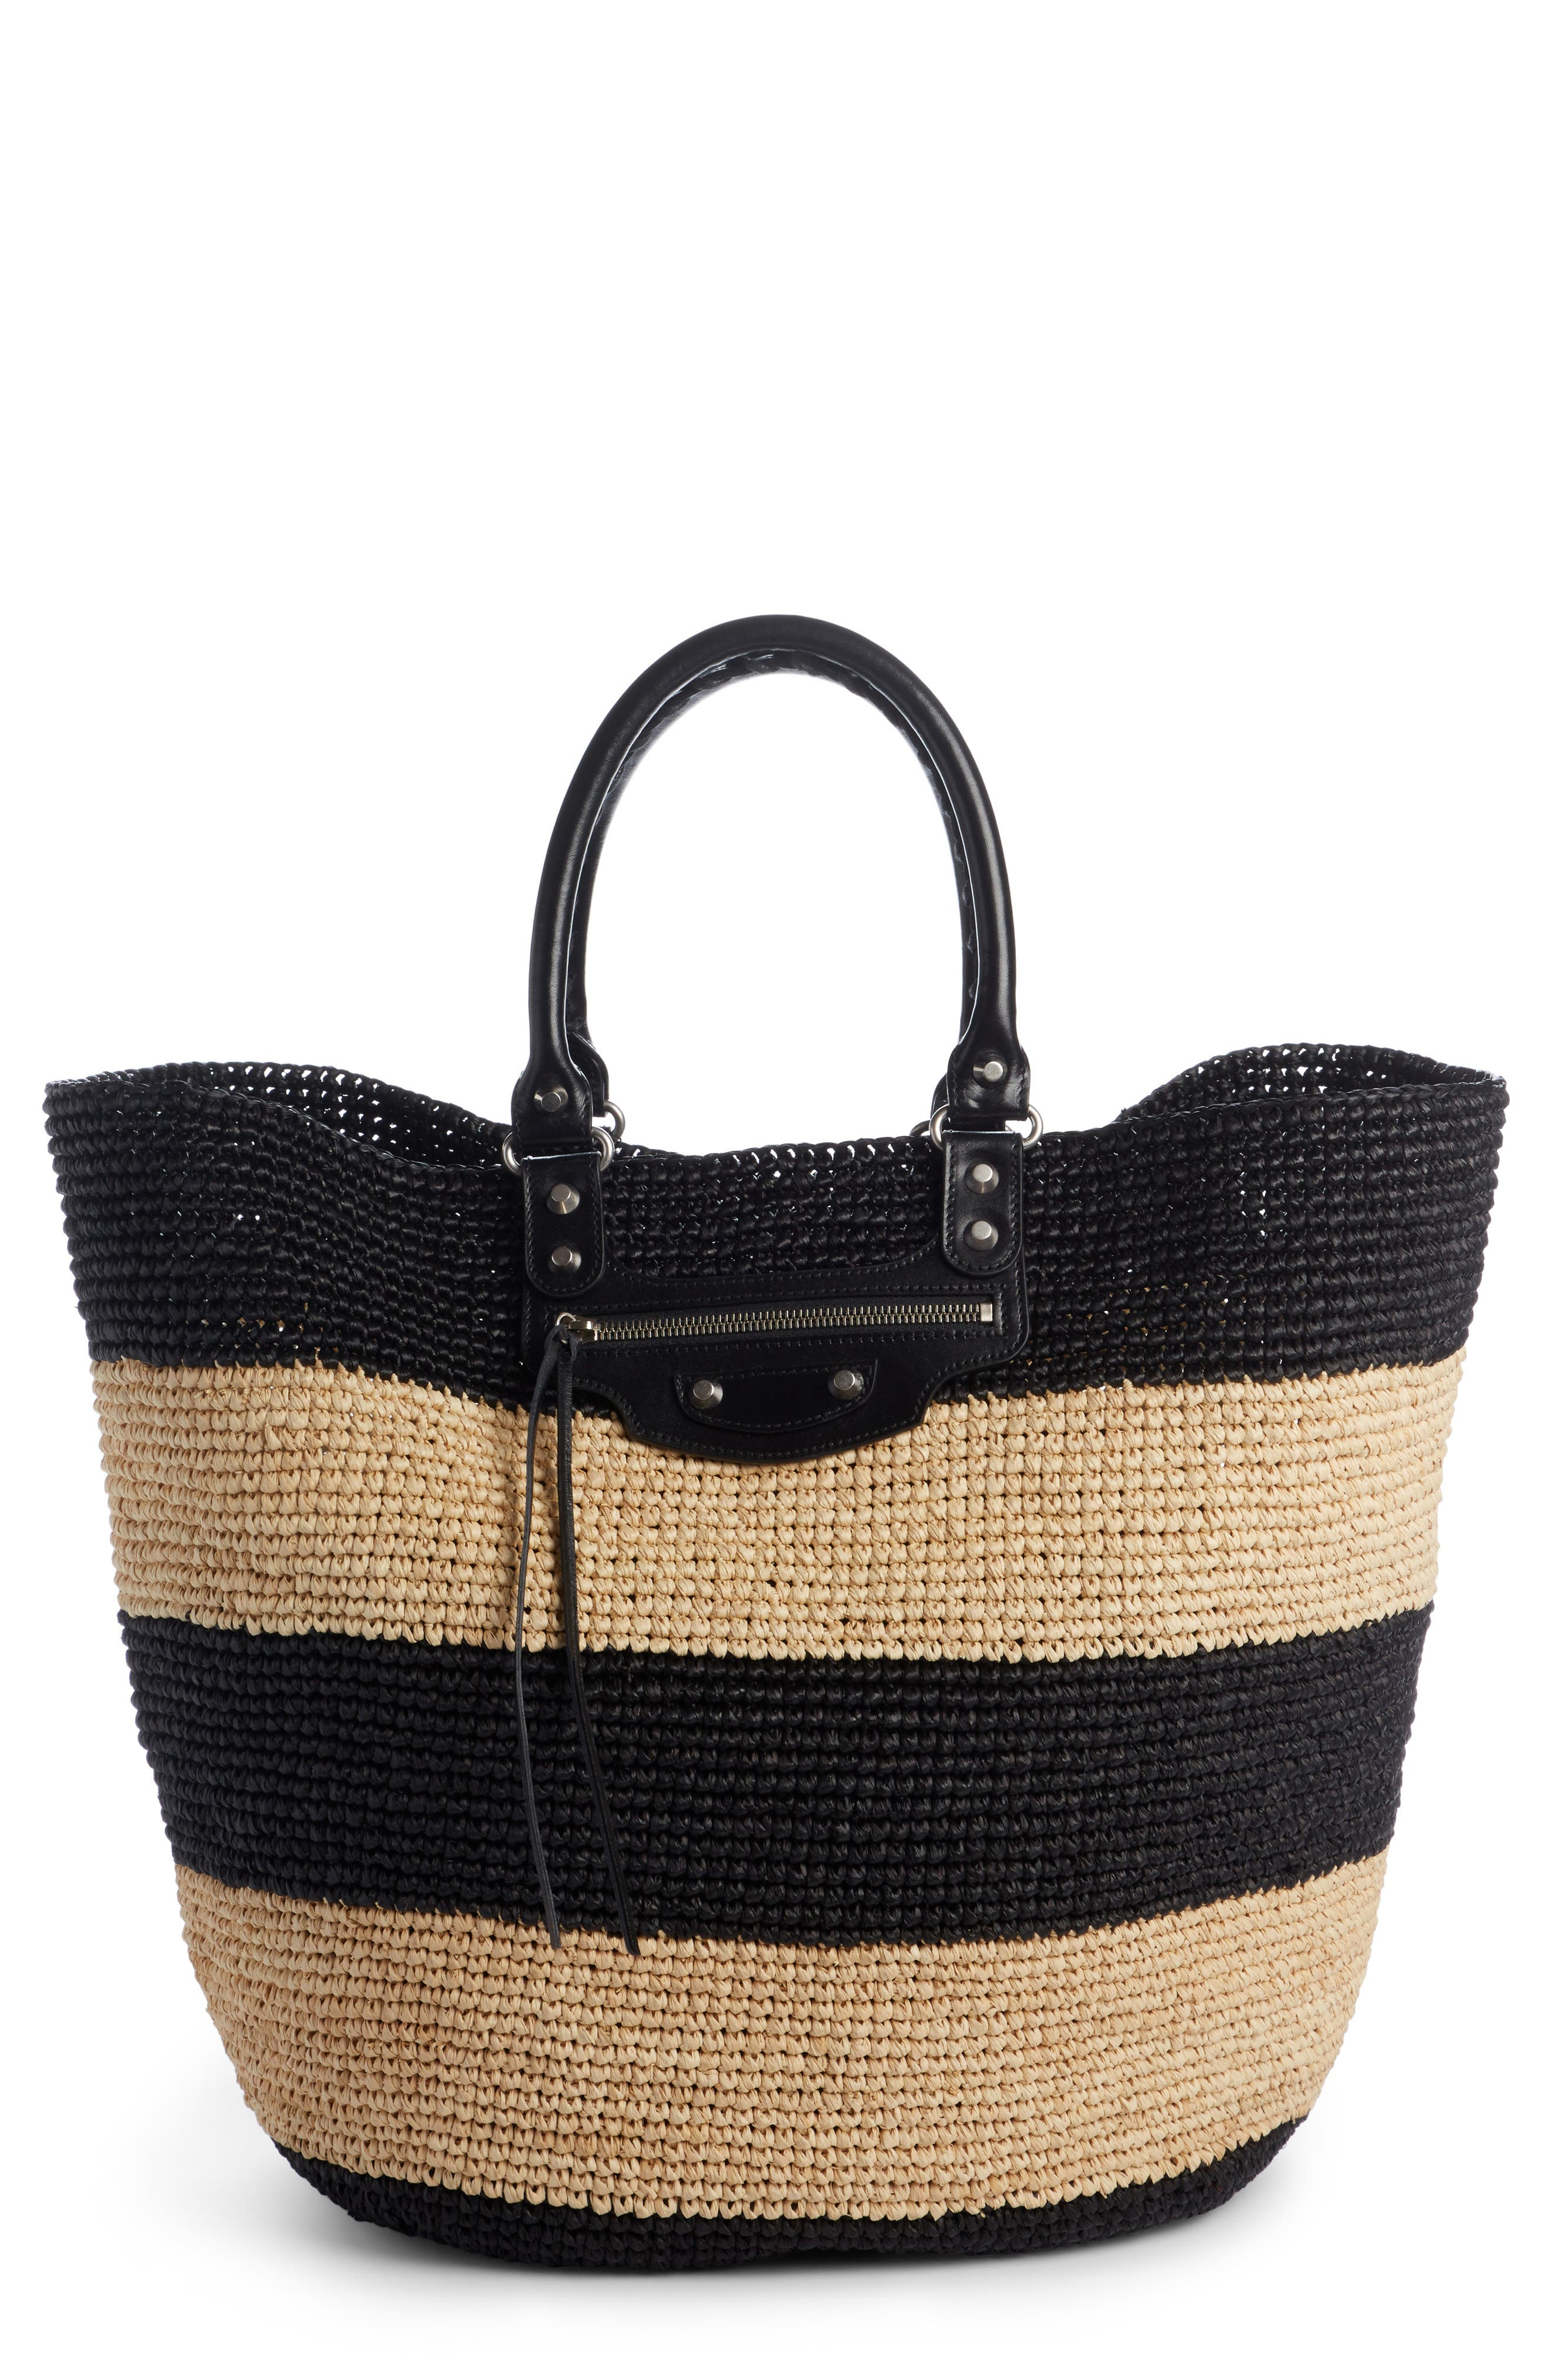 Main Image - Balenciaga Large Panier Woven Tote with Calfskin Leather Trim